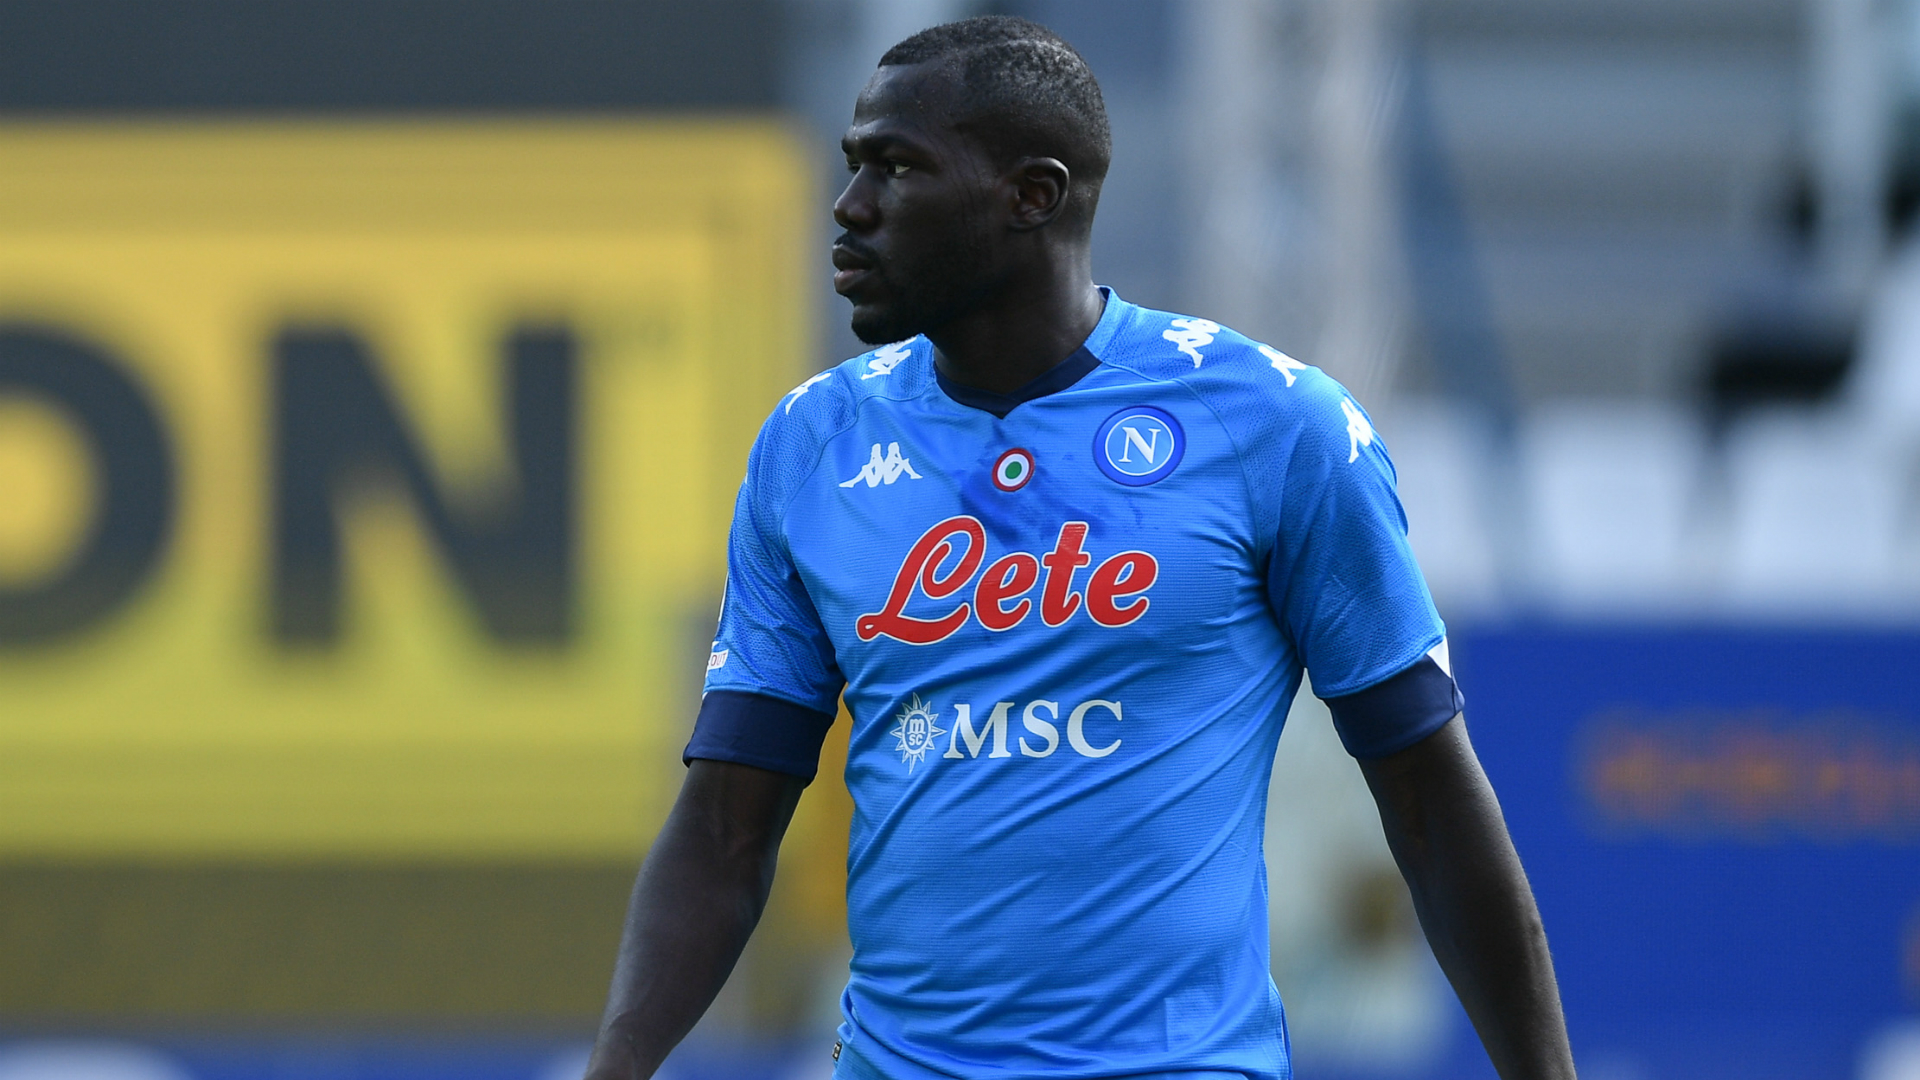 Gattuso: Napoli need to raise funds but I'd be happy to keep Man City and PSG target Koulibaly